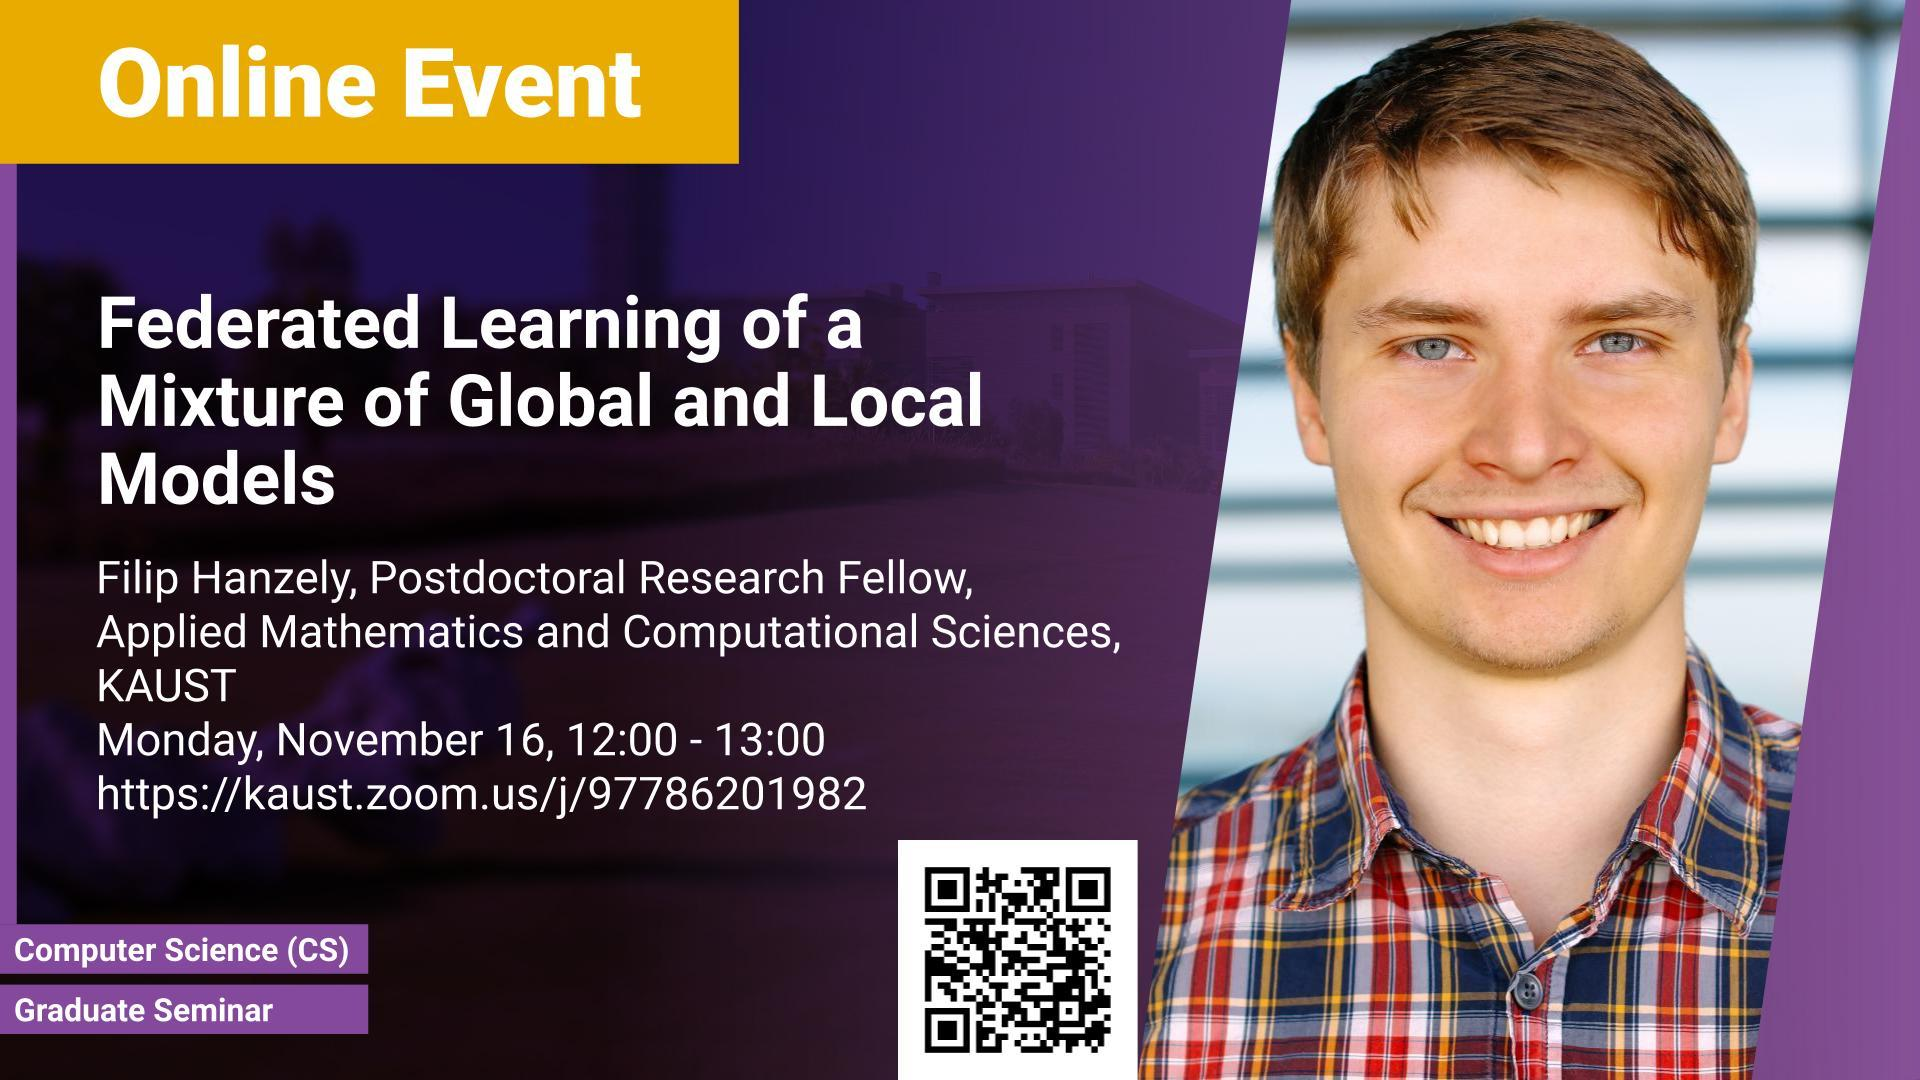 KAUST CEMSE CS Graduate Seminar Filip Hanzely Federated Learning of a Mixture of Global and Local Models